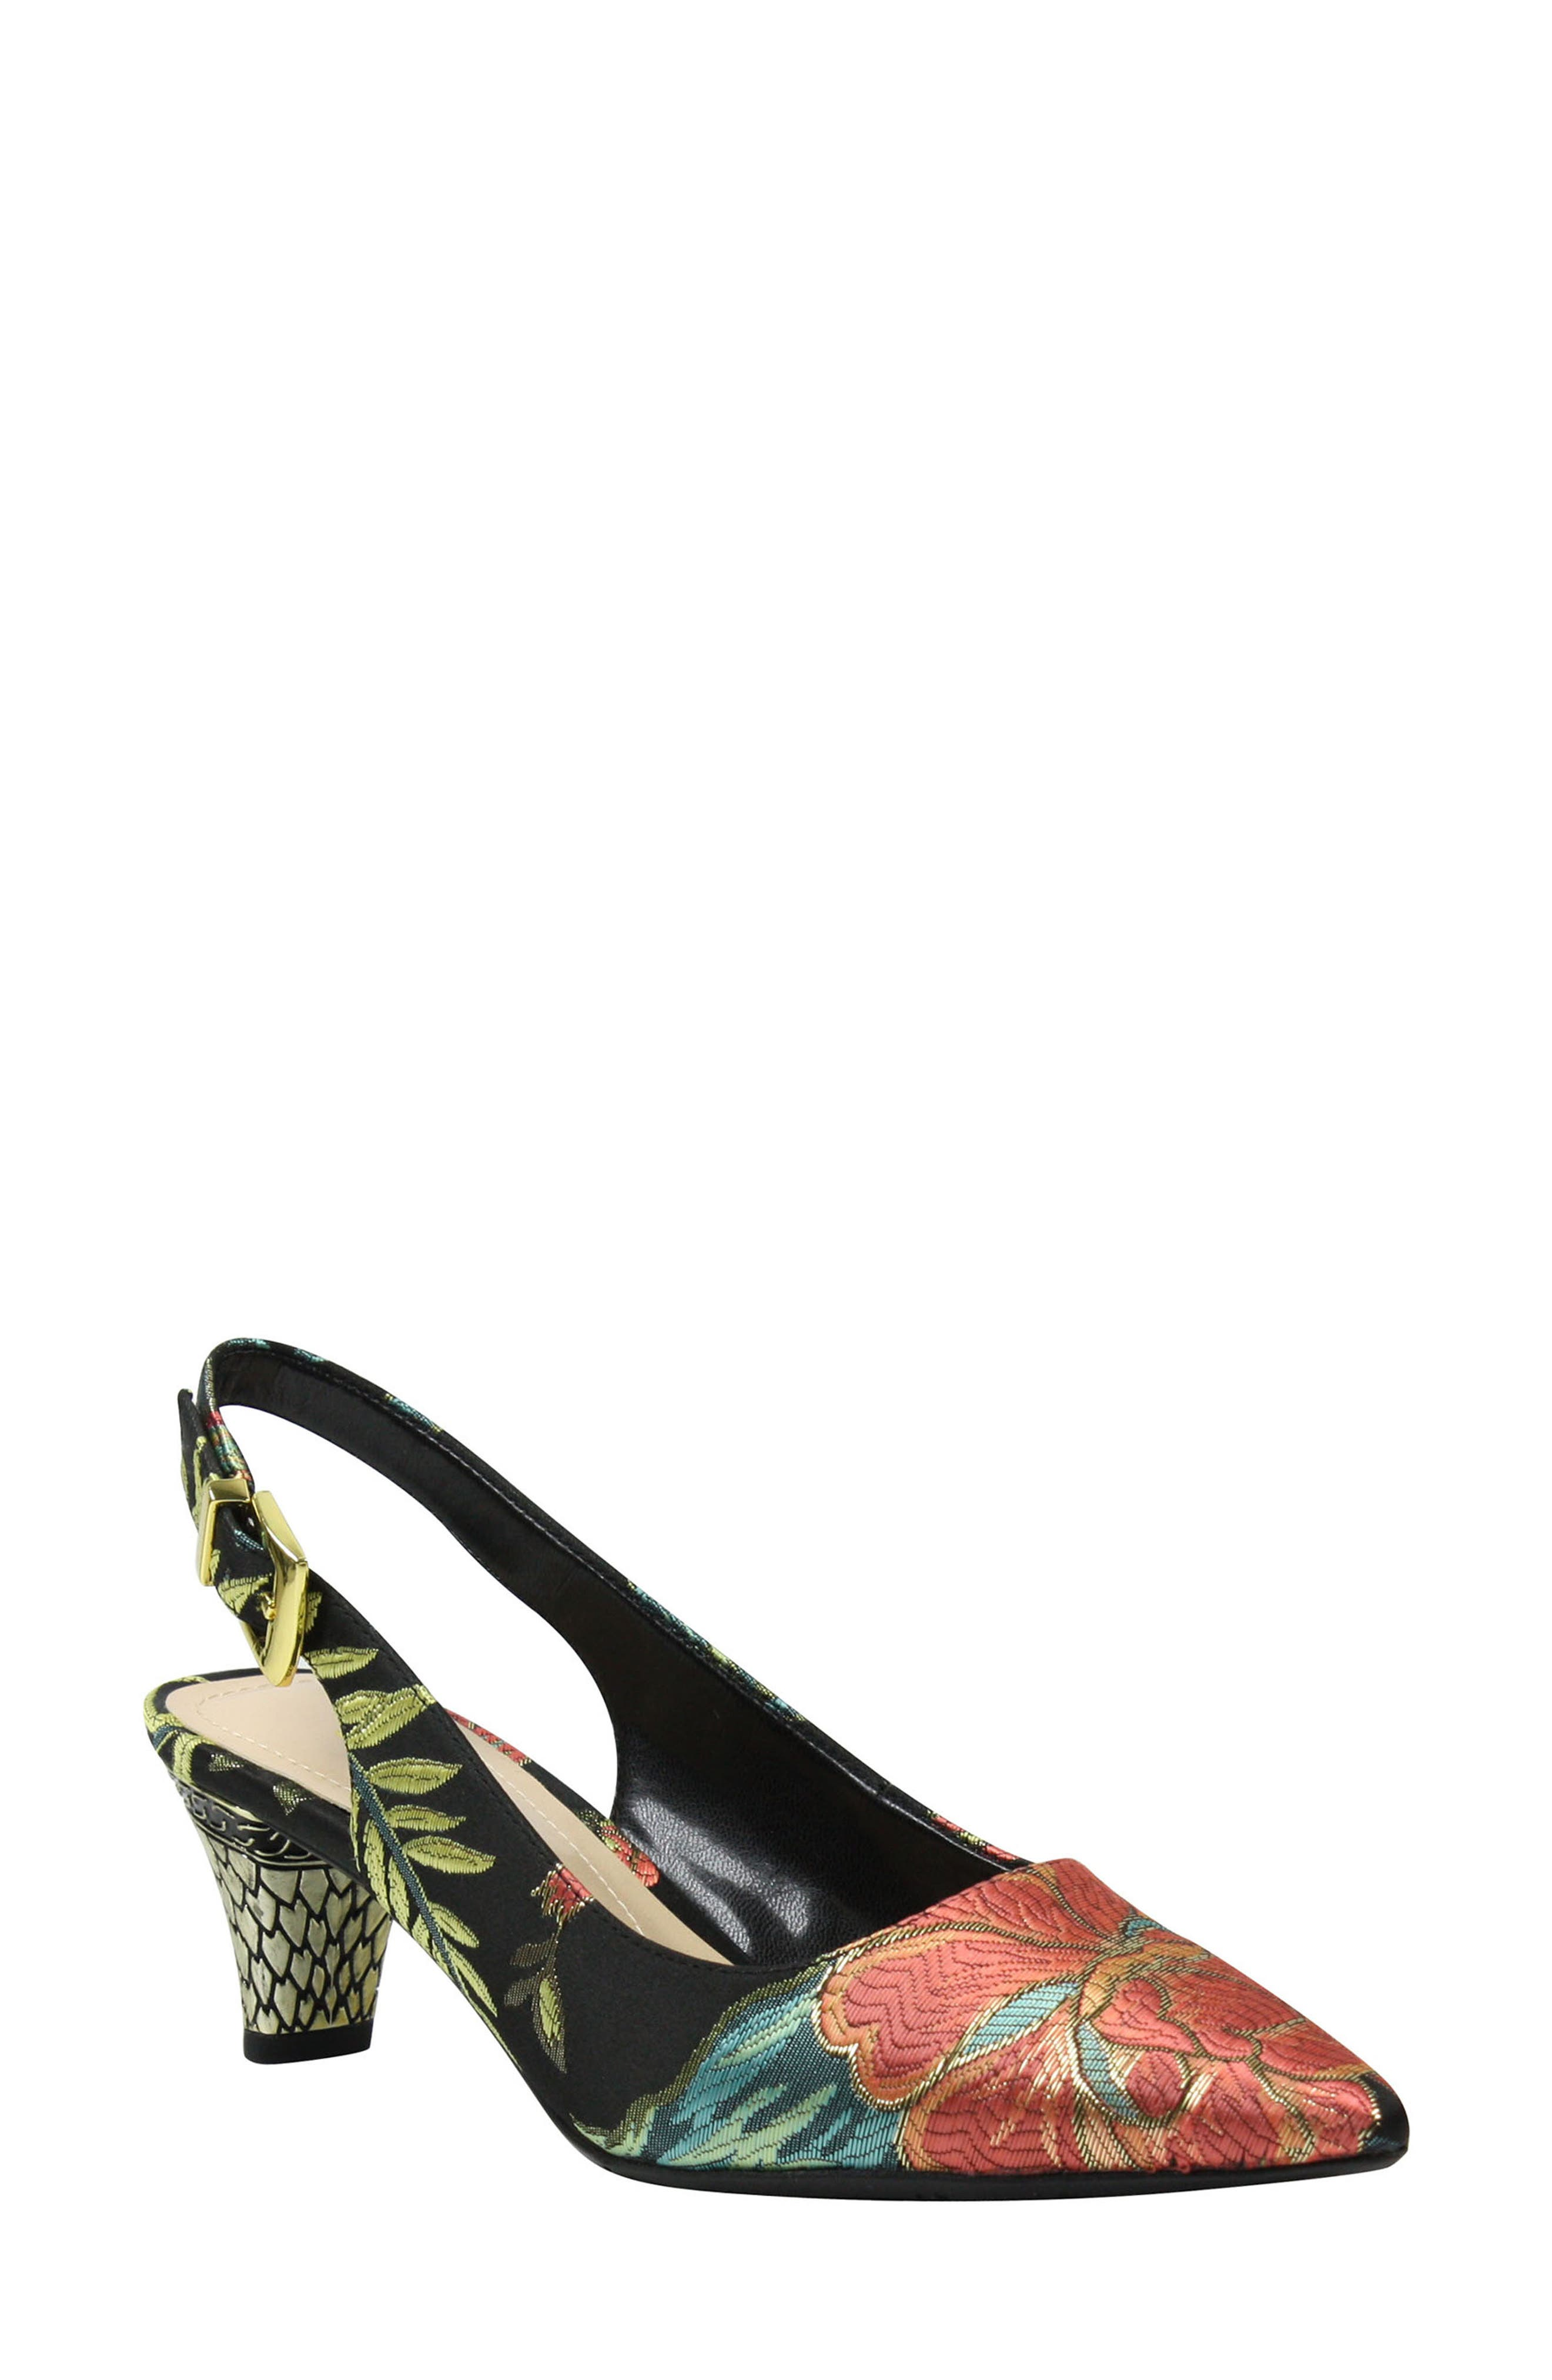 Mayetta Slingback Pump,                             Main thumbnail 1, color,                             Black/ Teal/ Coral Multi